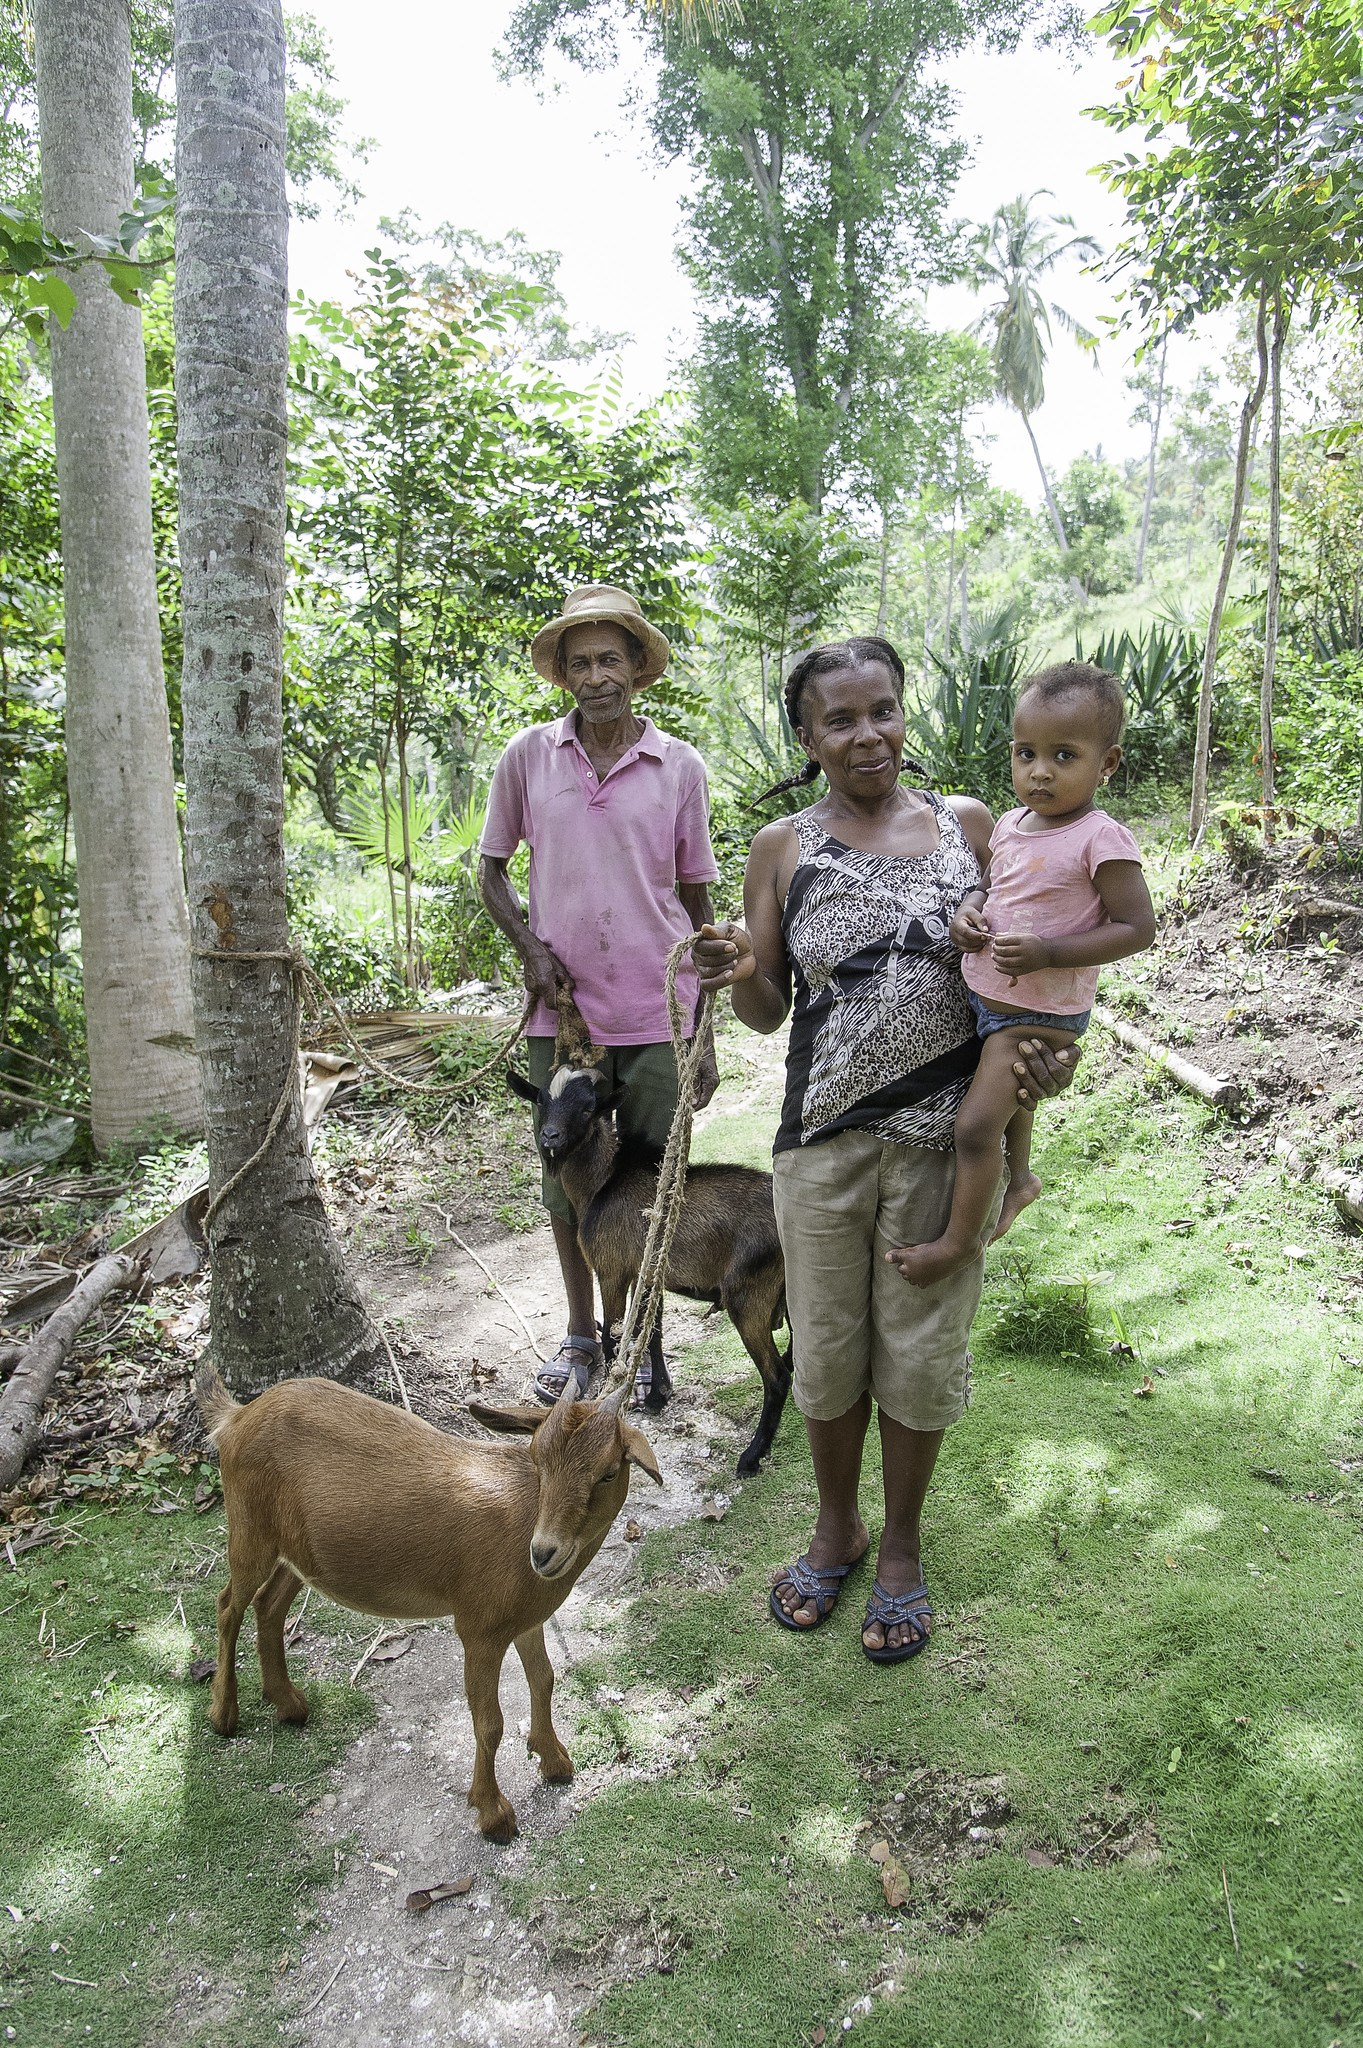 A family in Haiti poses with their goats